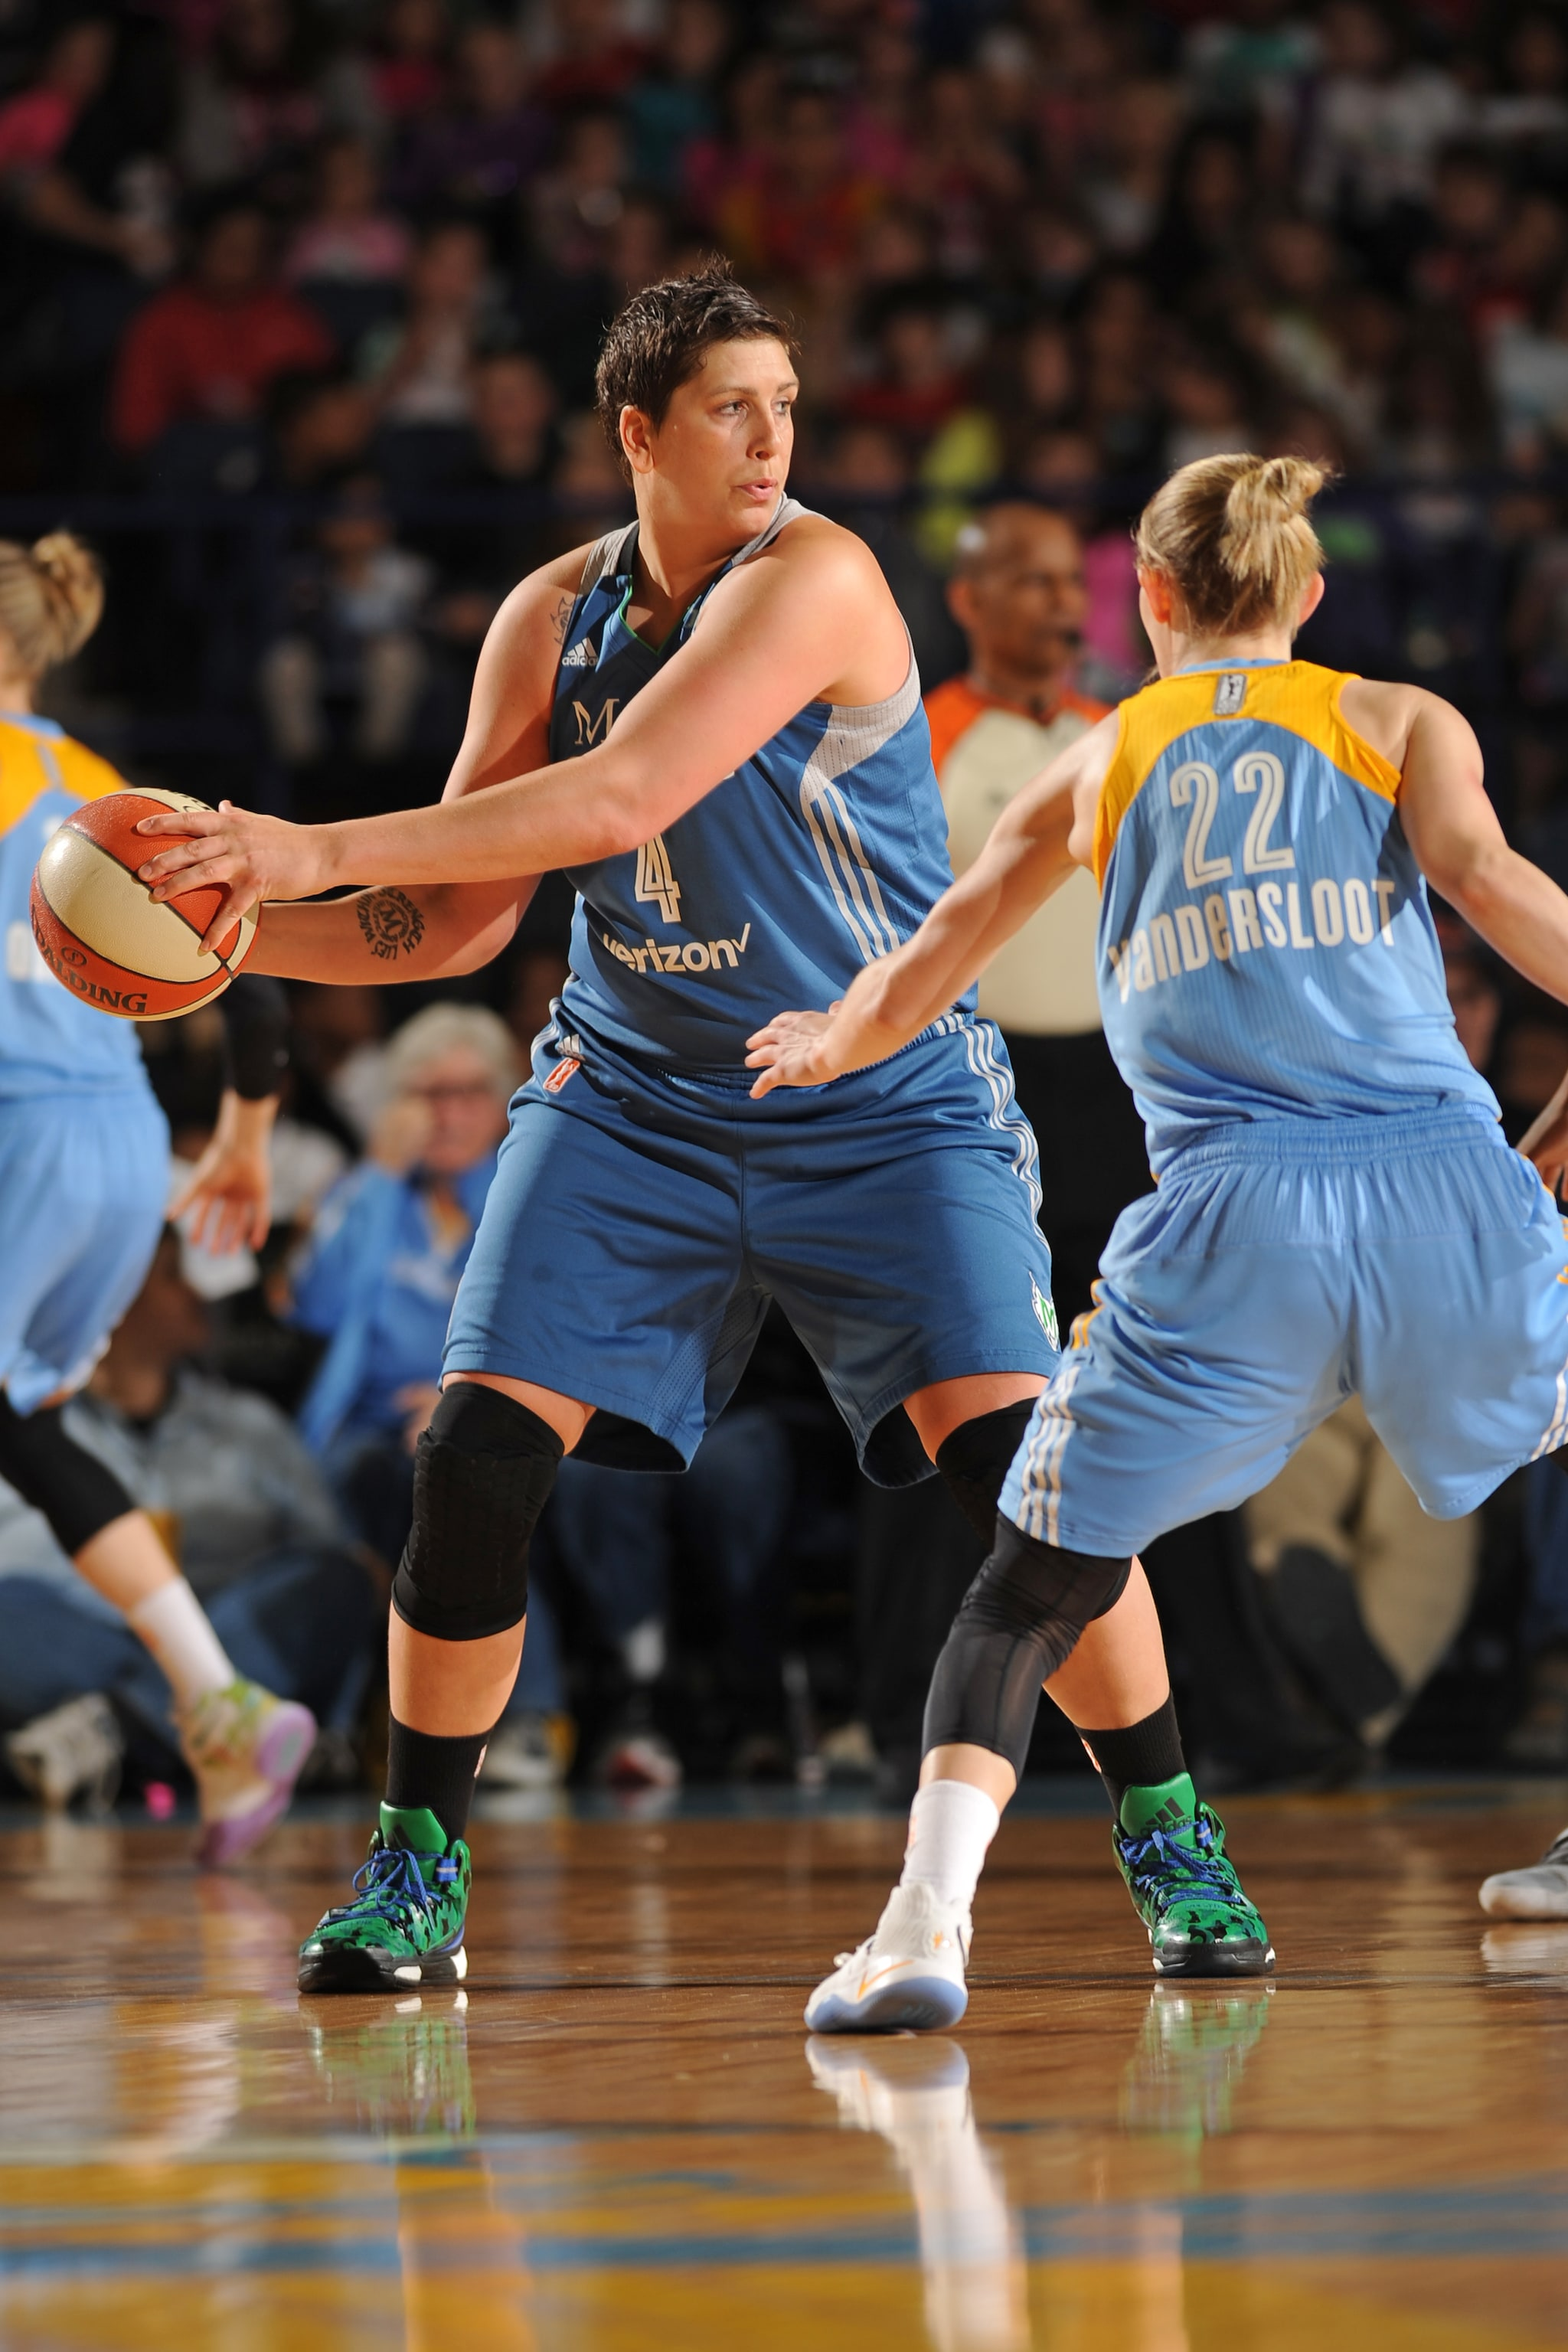 ROSEMONT, IL- MAY 18: Janel McCarville #4 of the Minnesota Lynx protects the ball against the Chicago Sky on May 18, 2016 at the Allstate Arena in Rosemont, Illinois. NOTE TO USER: User expressly acknowledges and agrees that, by downloading and/or using this photograph, user is consenting to the terms and conditions of the Getty Images License Agreement. Mandatory Copyright Notice: Copyright 2016 NBAE (Photo by Randy Belice/NBAE via Getty Images)